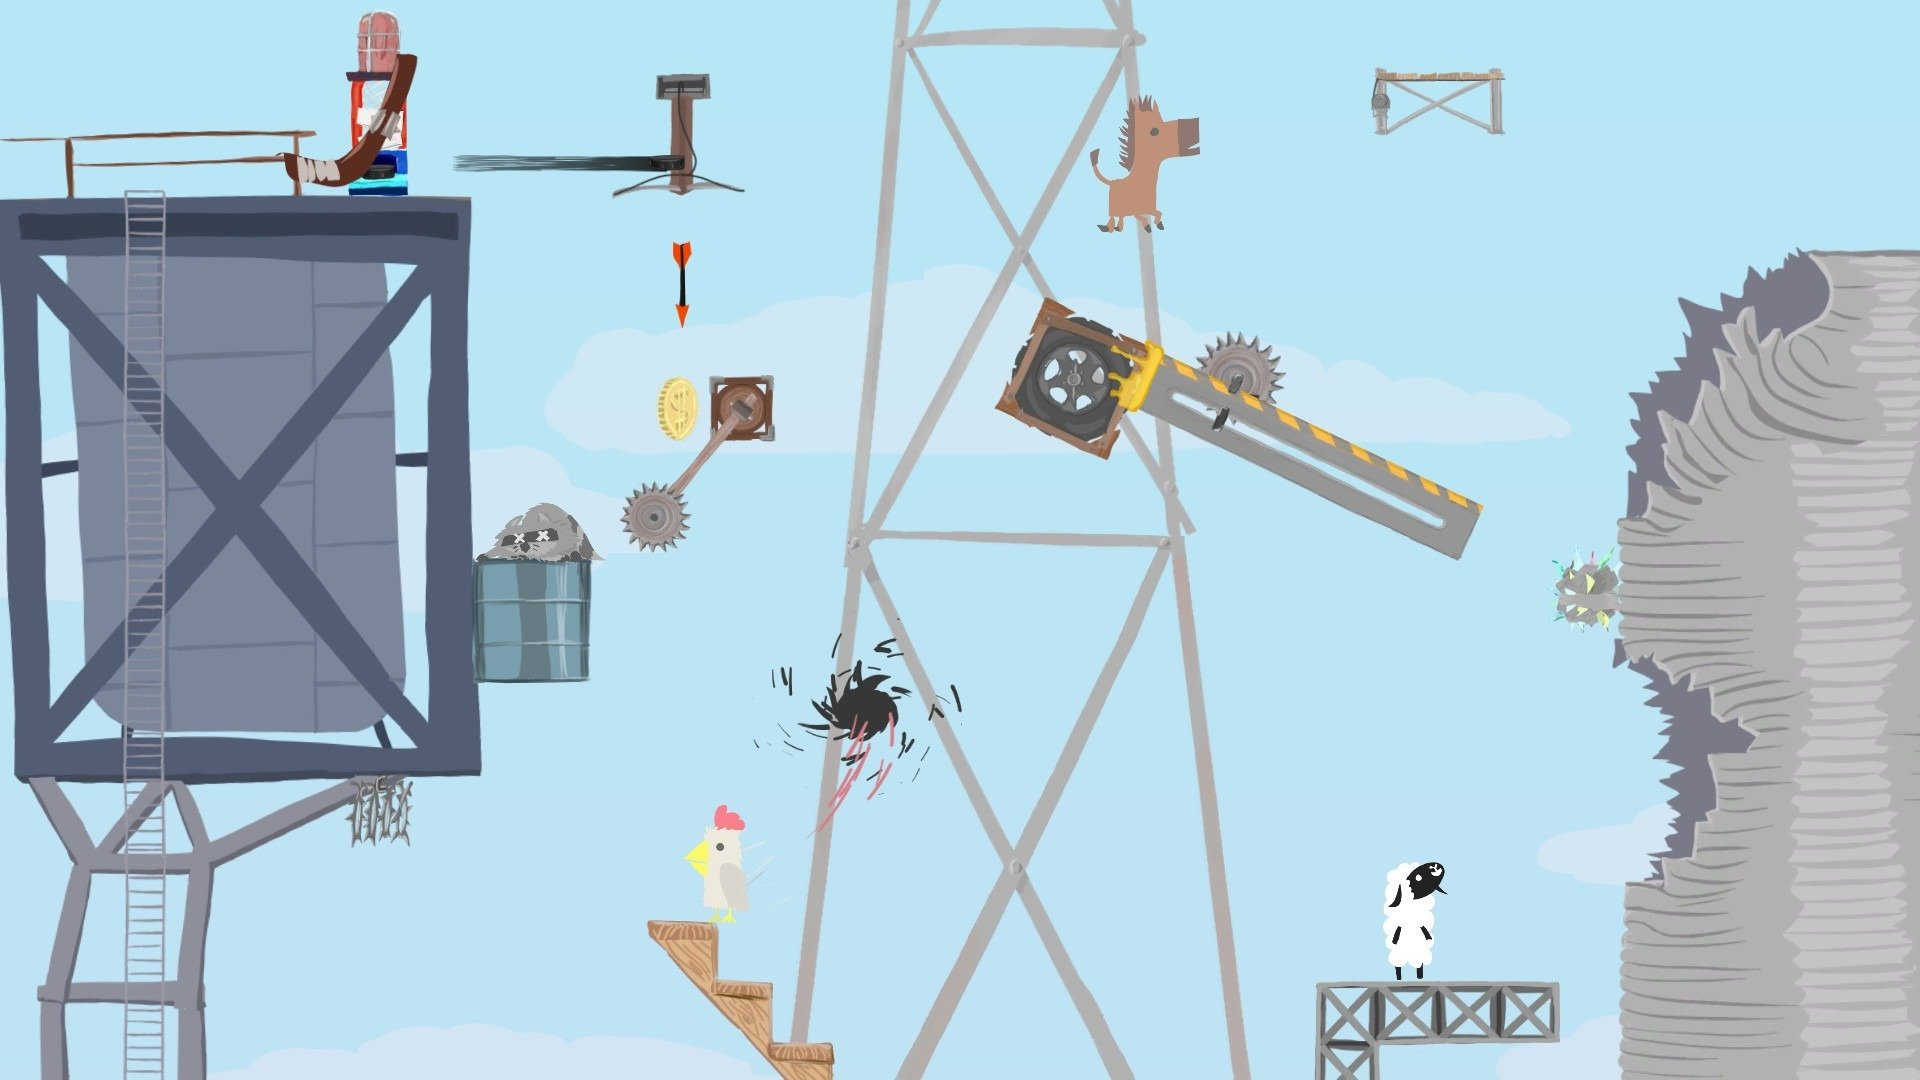 Ultimate Chicken Horse gameplay